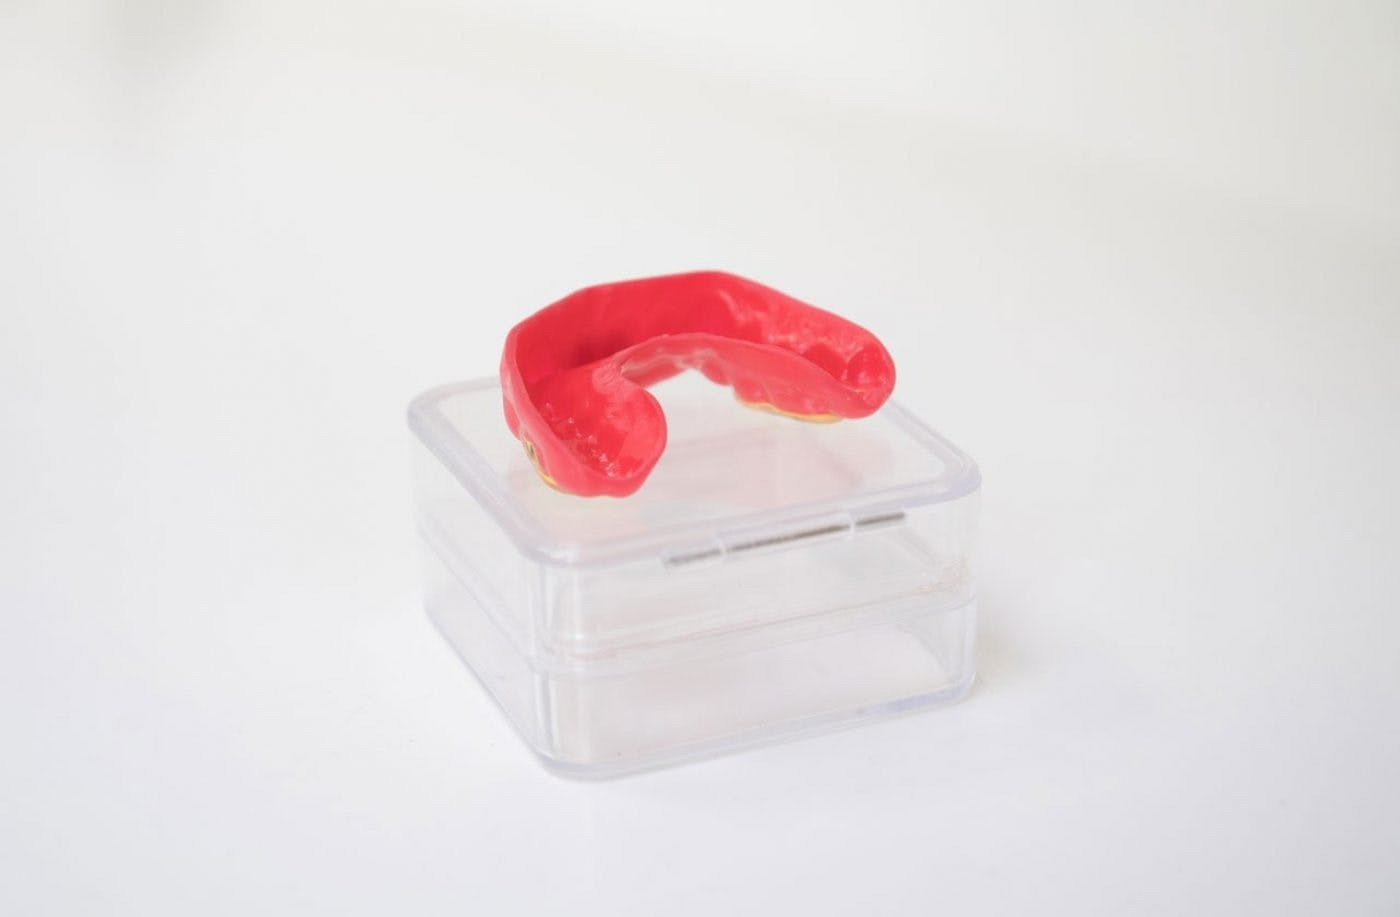 Harley Street Other Mouthguards